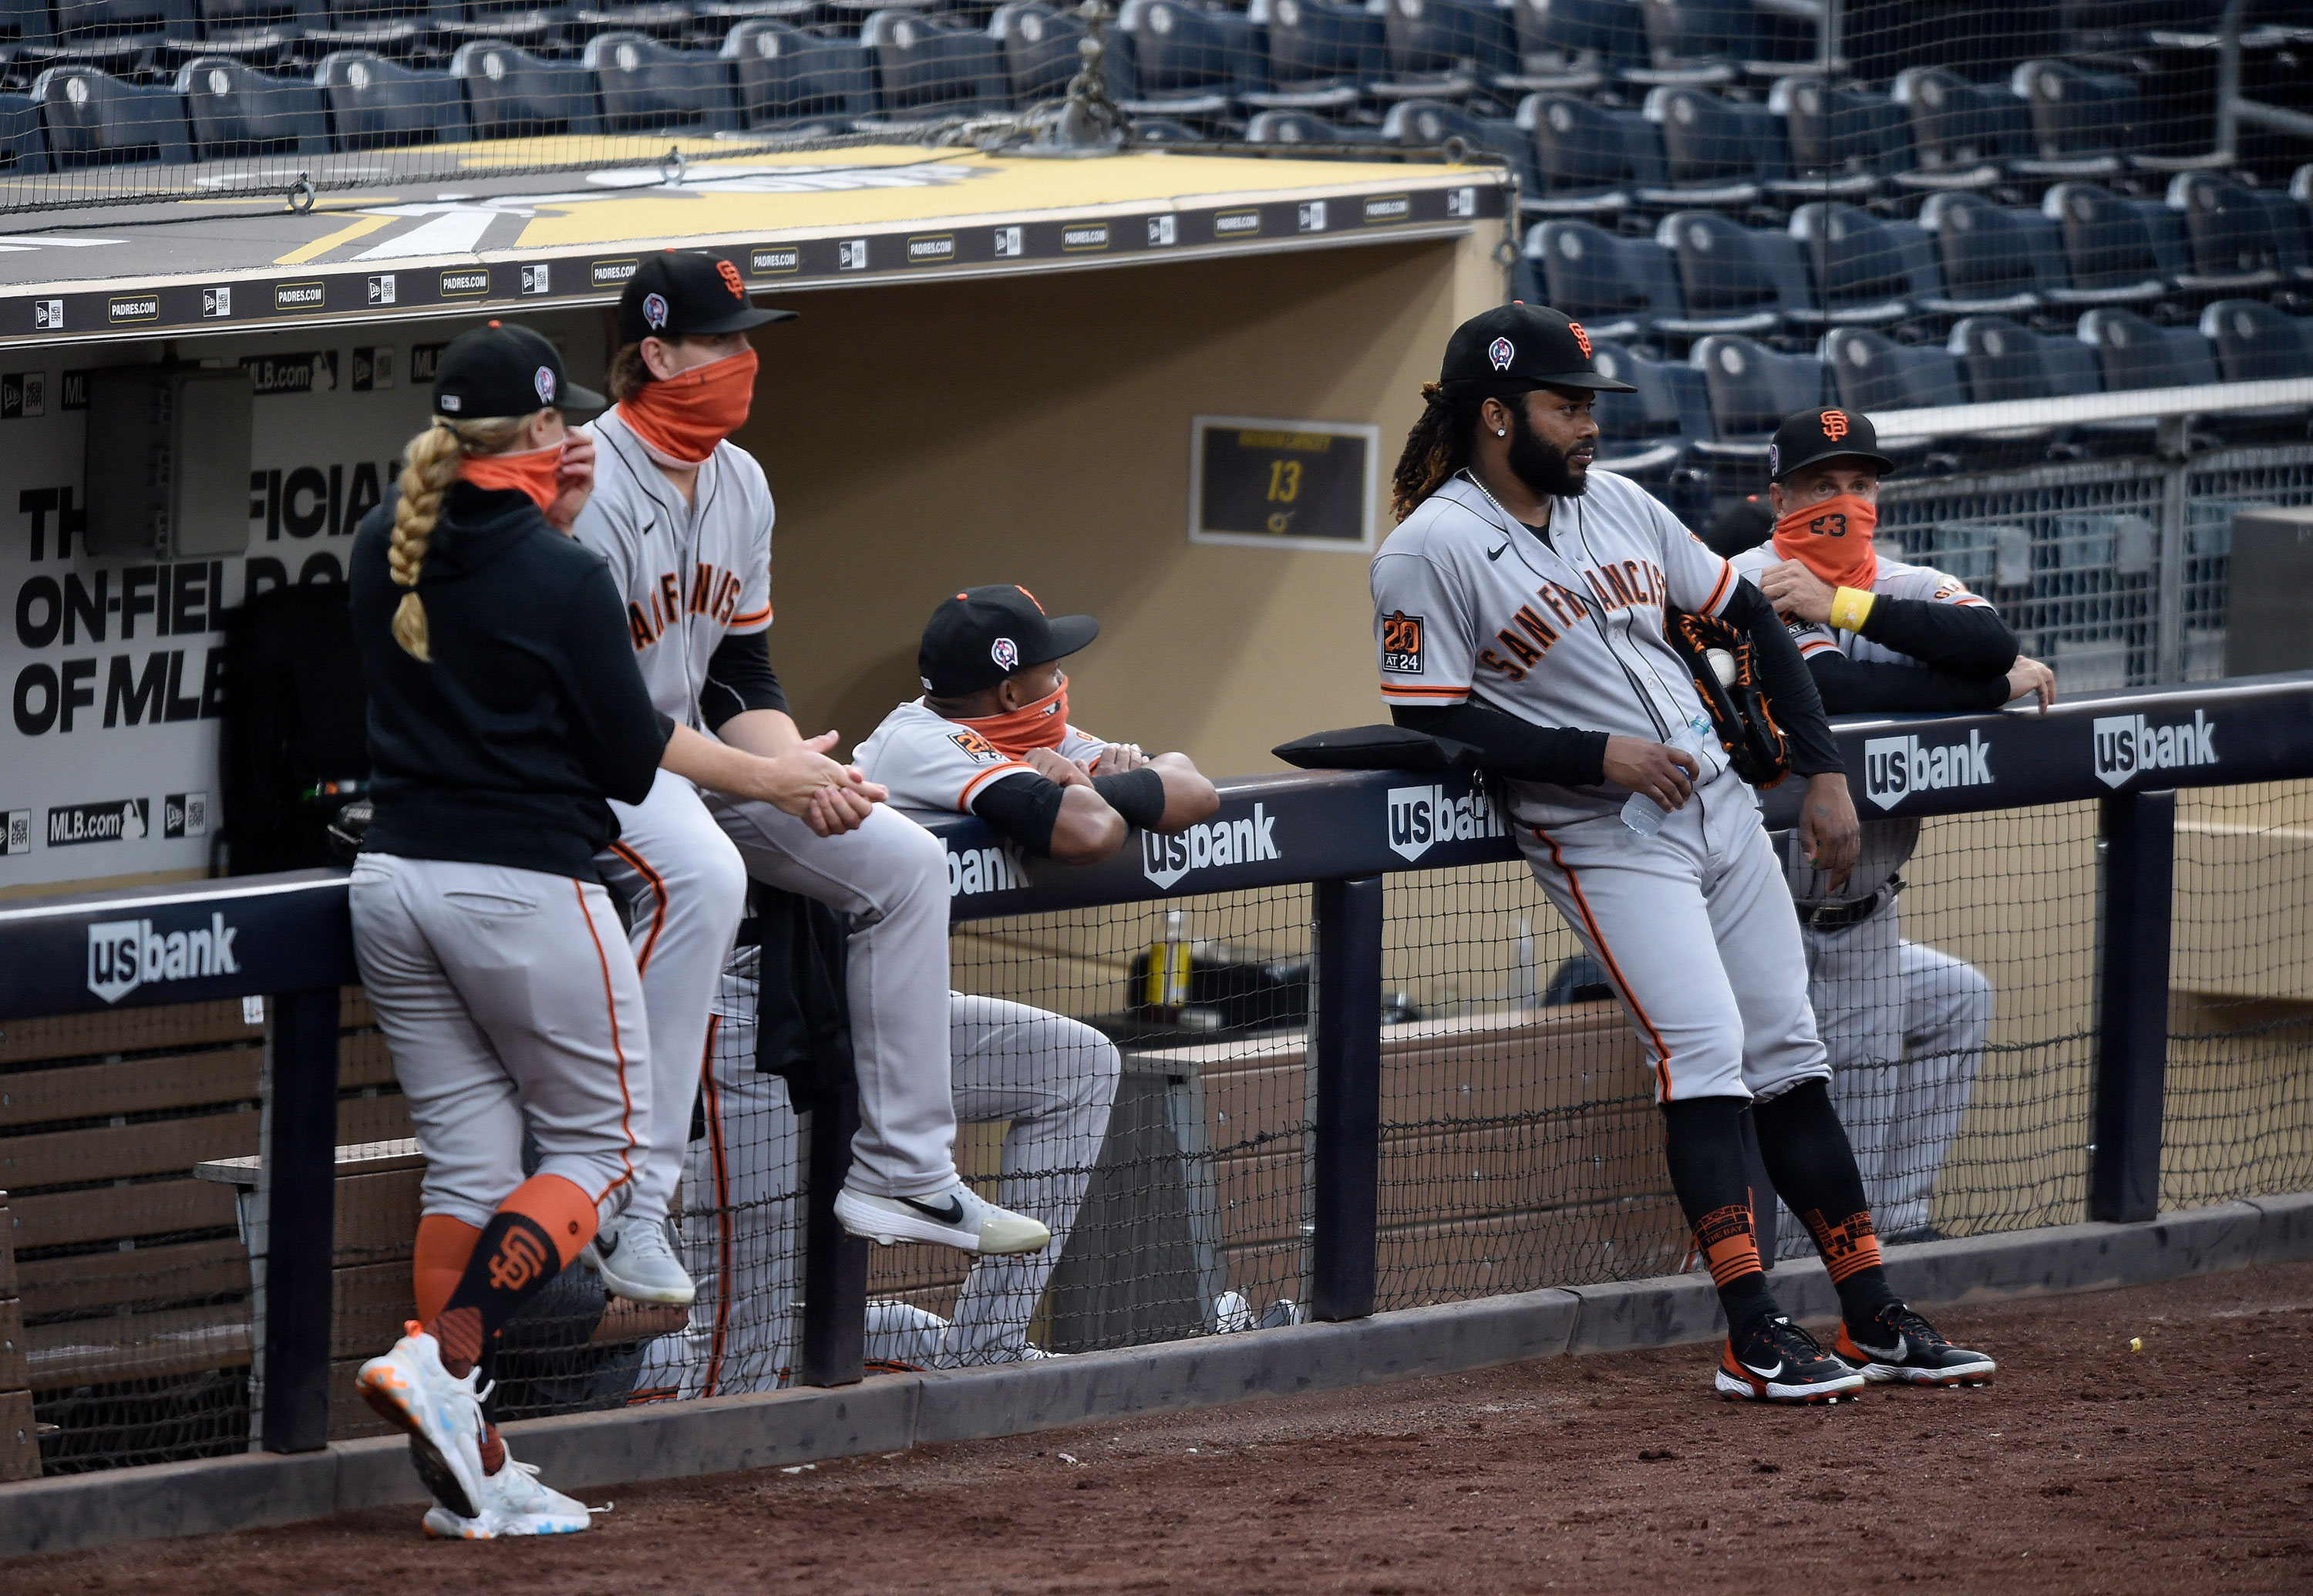 Members of the San Francisco Giants are seen after their game against the San Diego Padres was postponed on September 11 in San Diego, California.